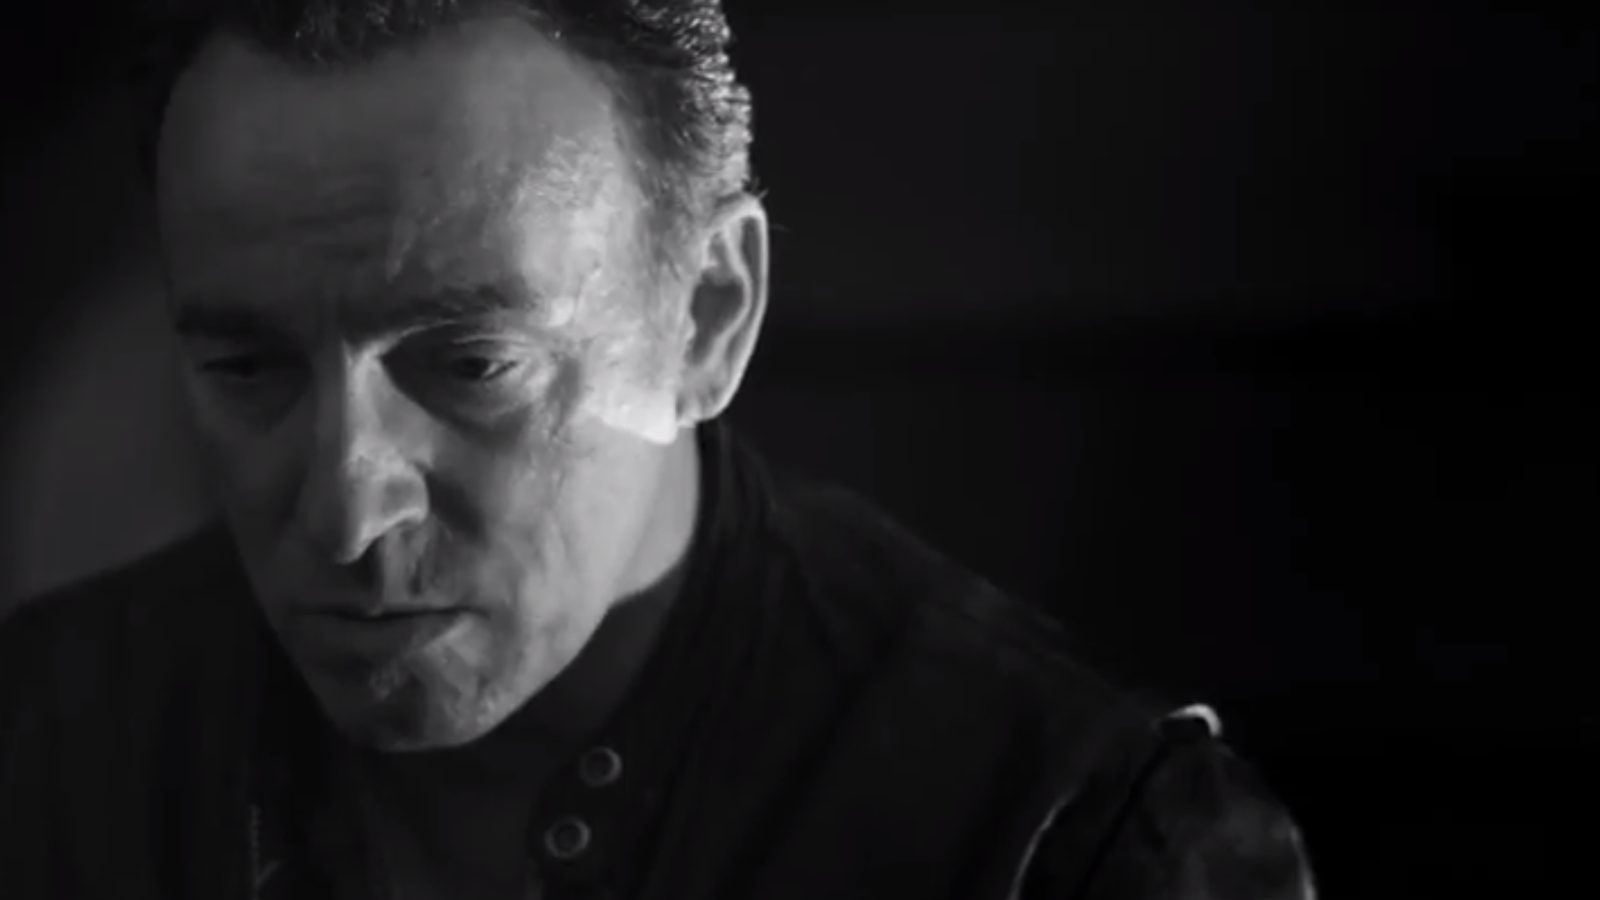 Bruce Springsteen estrena el videoclip 'We take care of our own'